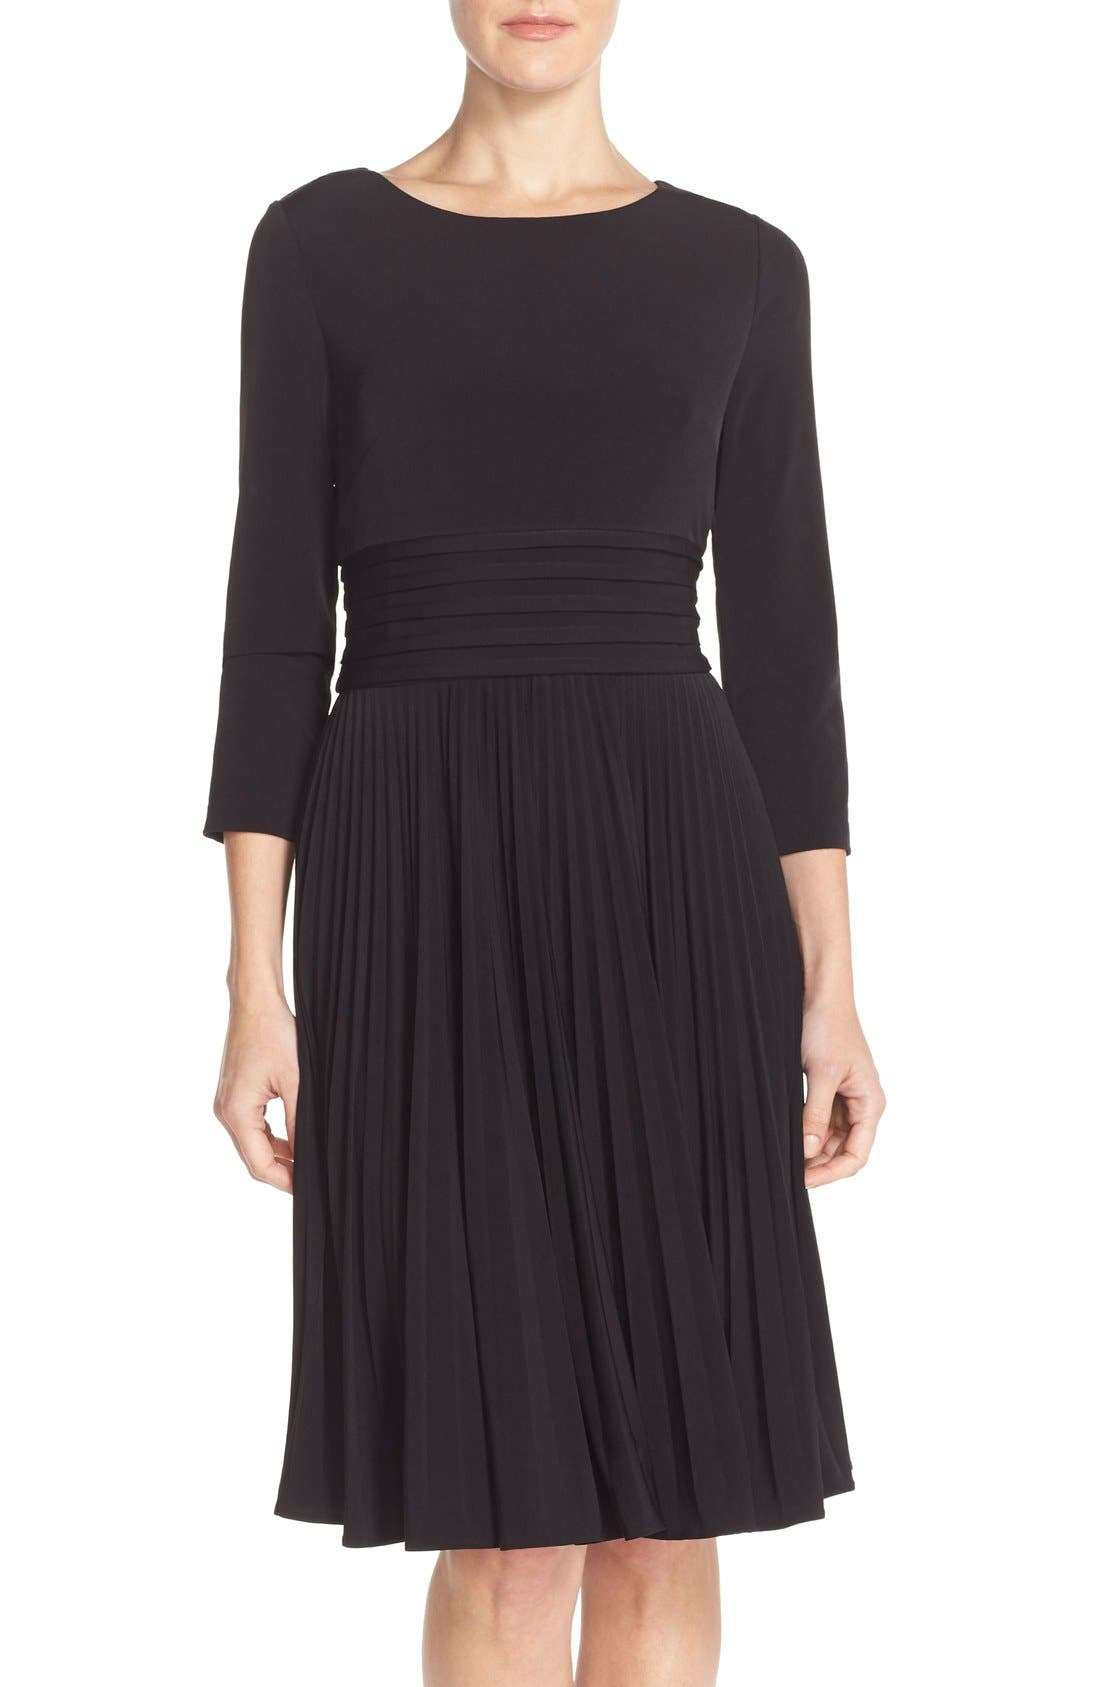 Alternate Image 1 Selected - Eliza J Pleated Jersey Fit & Flare Dress